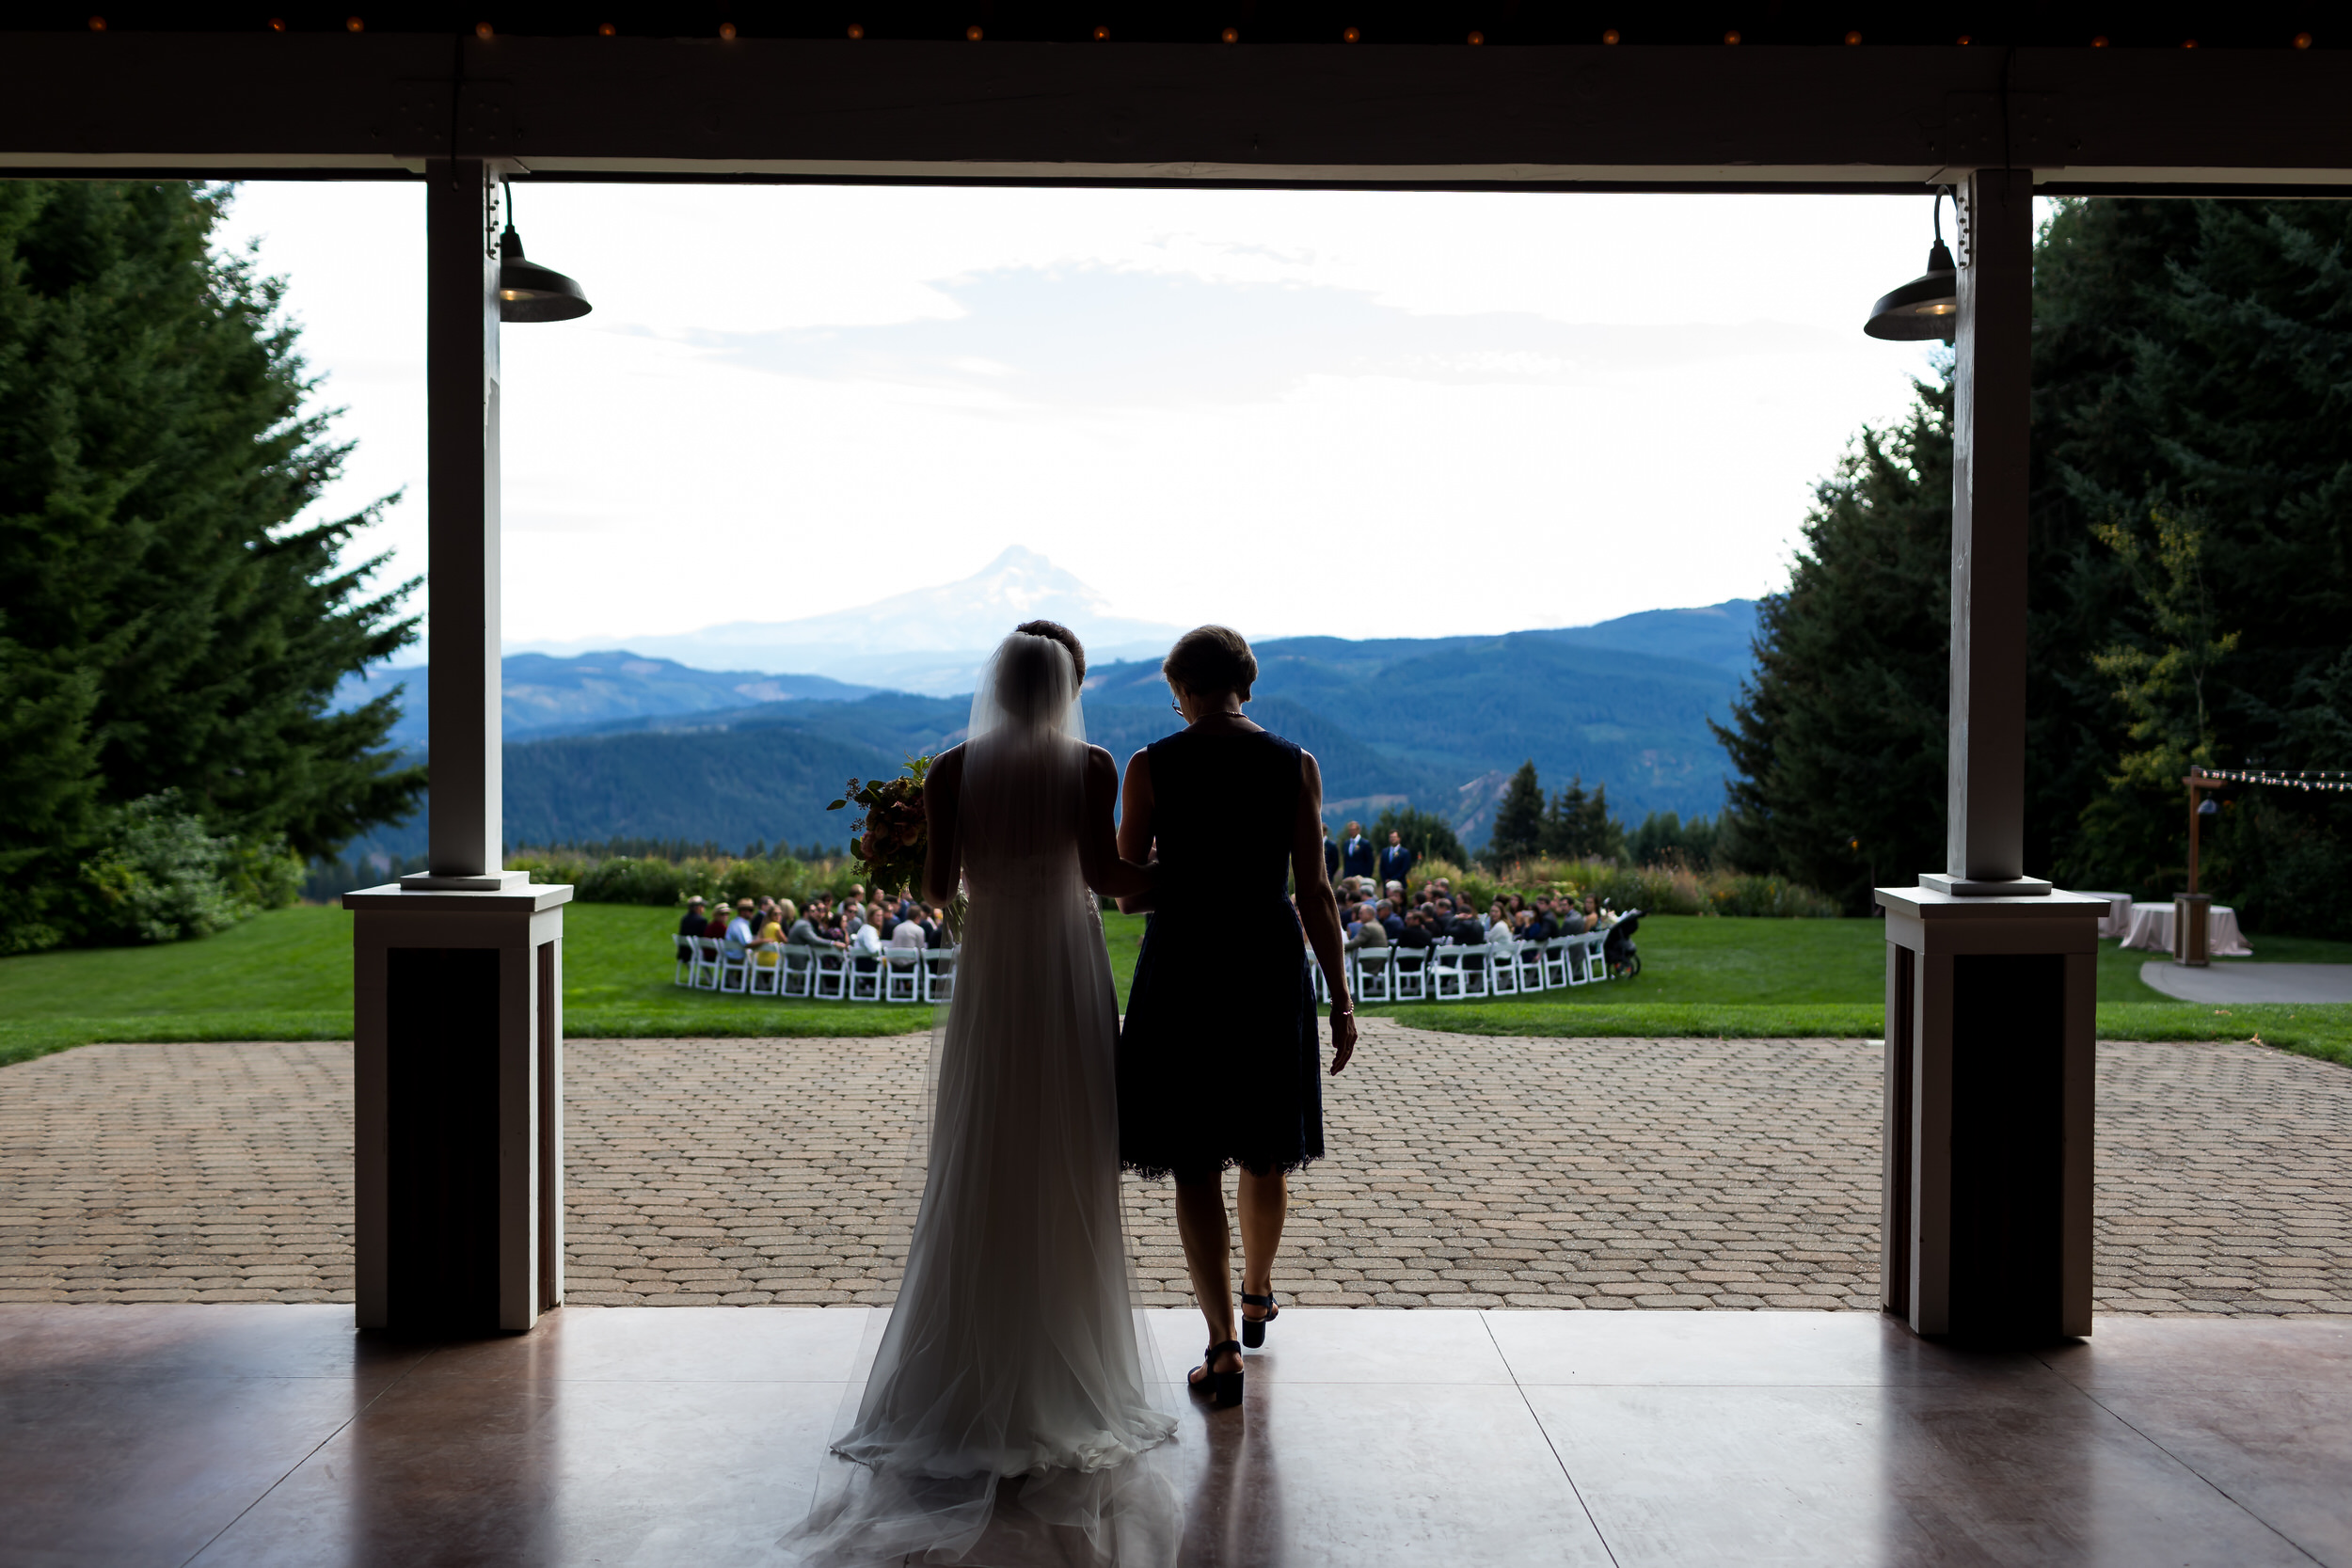 Gorge_Crest_Vineyards_Wedding_Stark_Photography_031